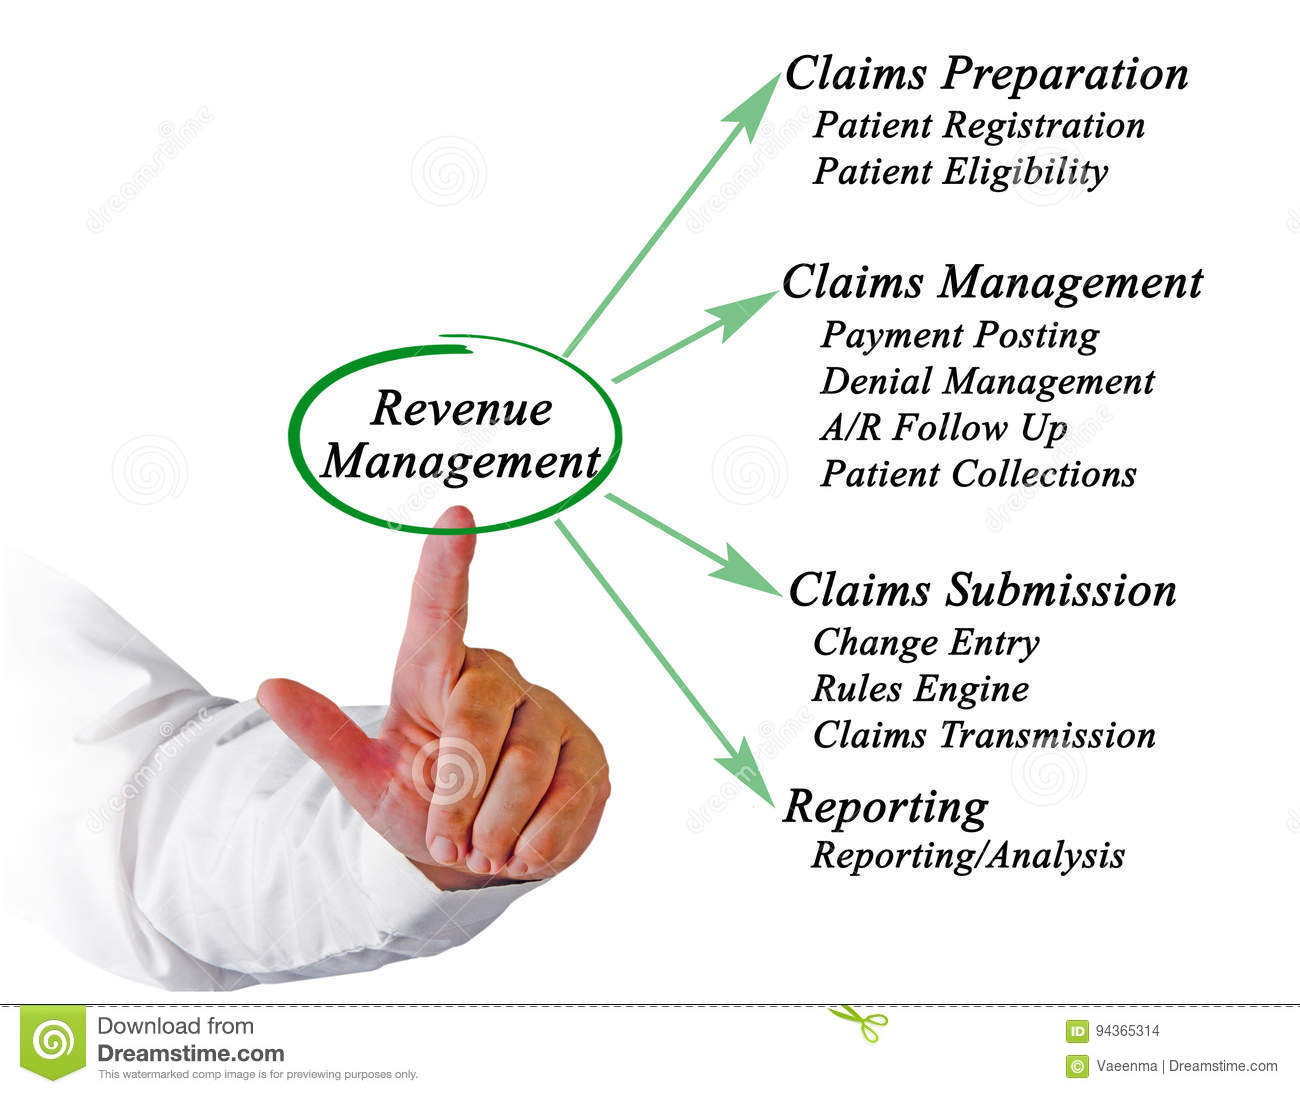 claims prepration This is a critical meeting for the claim process, the adjuster will begin developing their estimation of the total claim known as the loss reserve the reserve is money set aside by the insurance company to cover the total value of the loss.